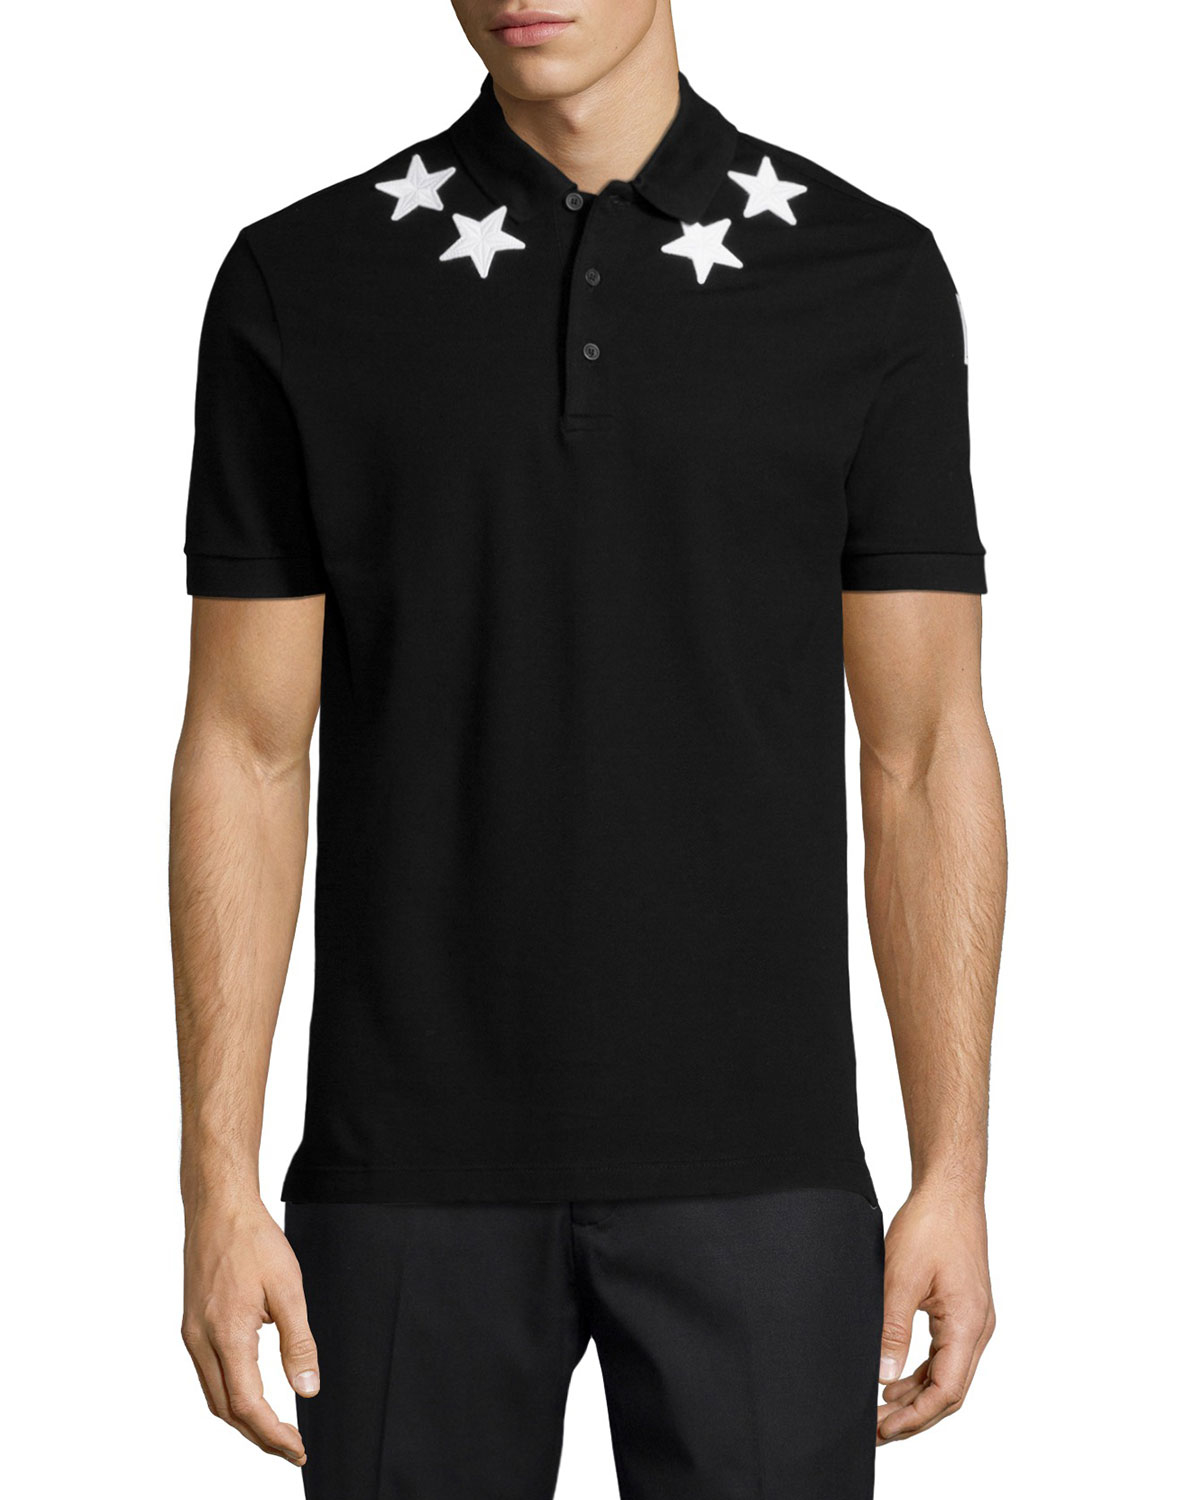 givenchy star print knit polo shirt in black for men lyst